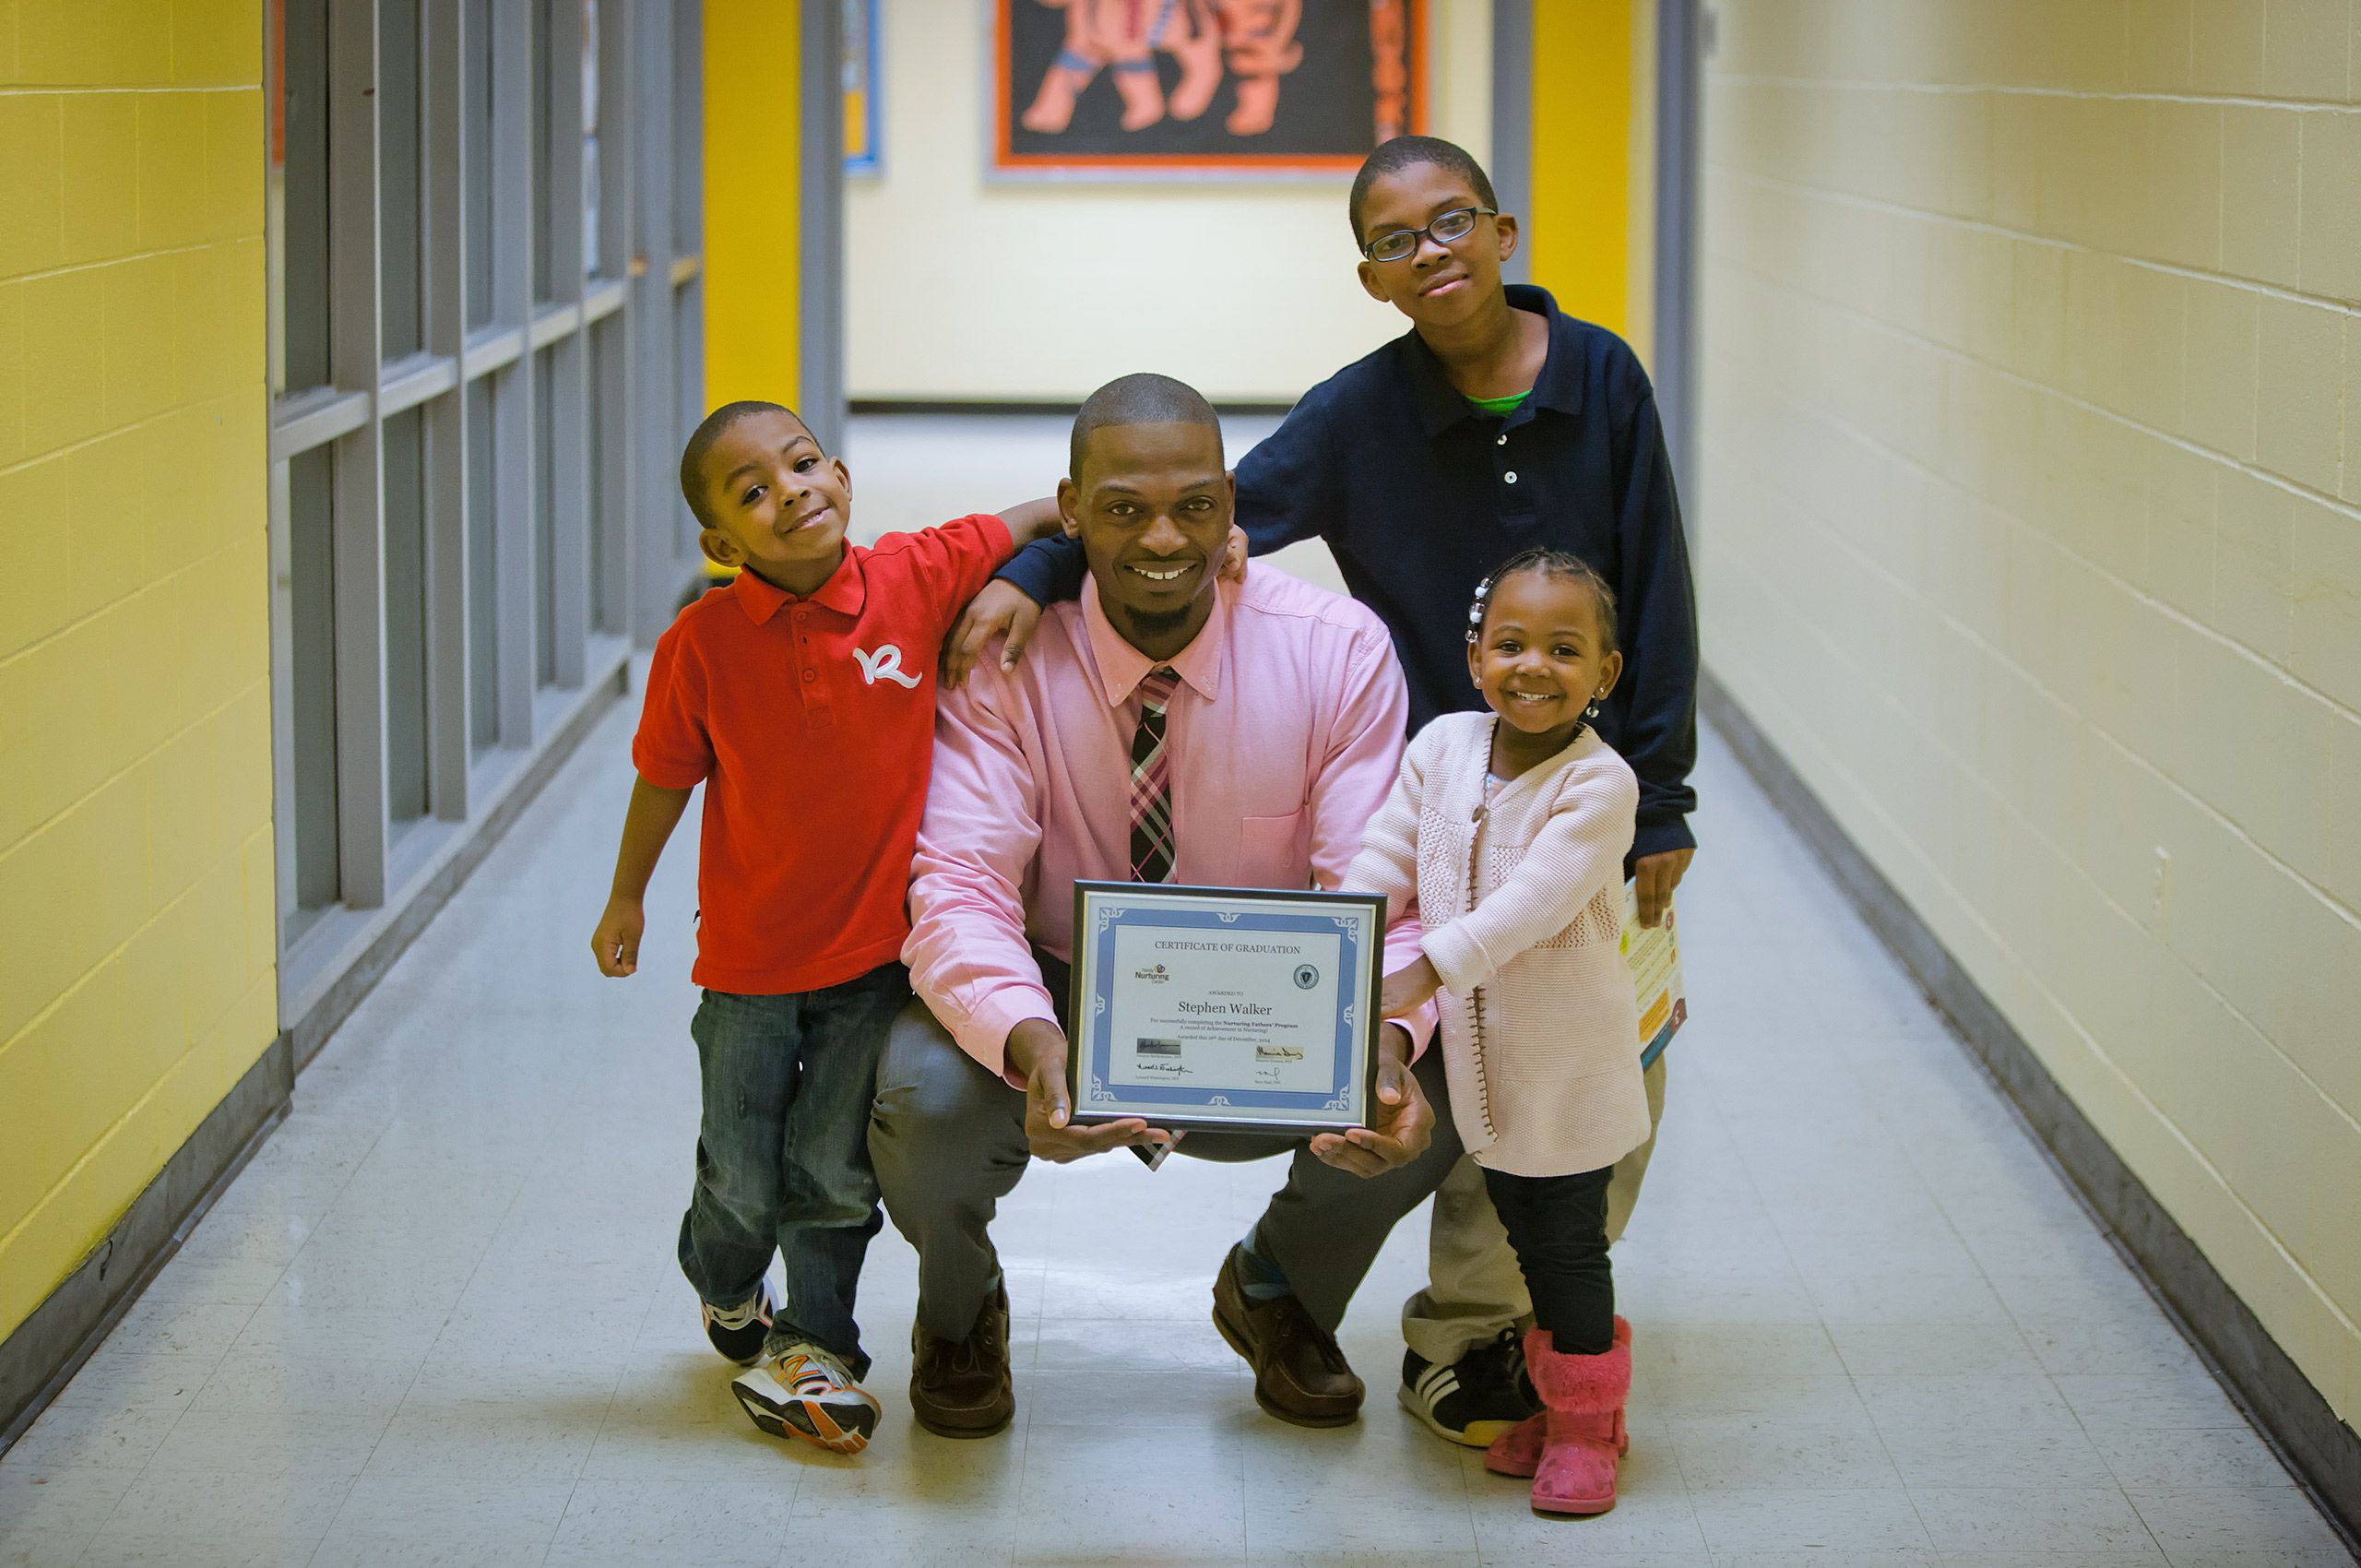 Father of Three is Receiving an Award